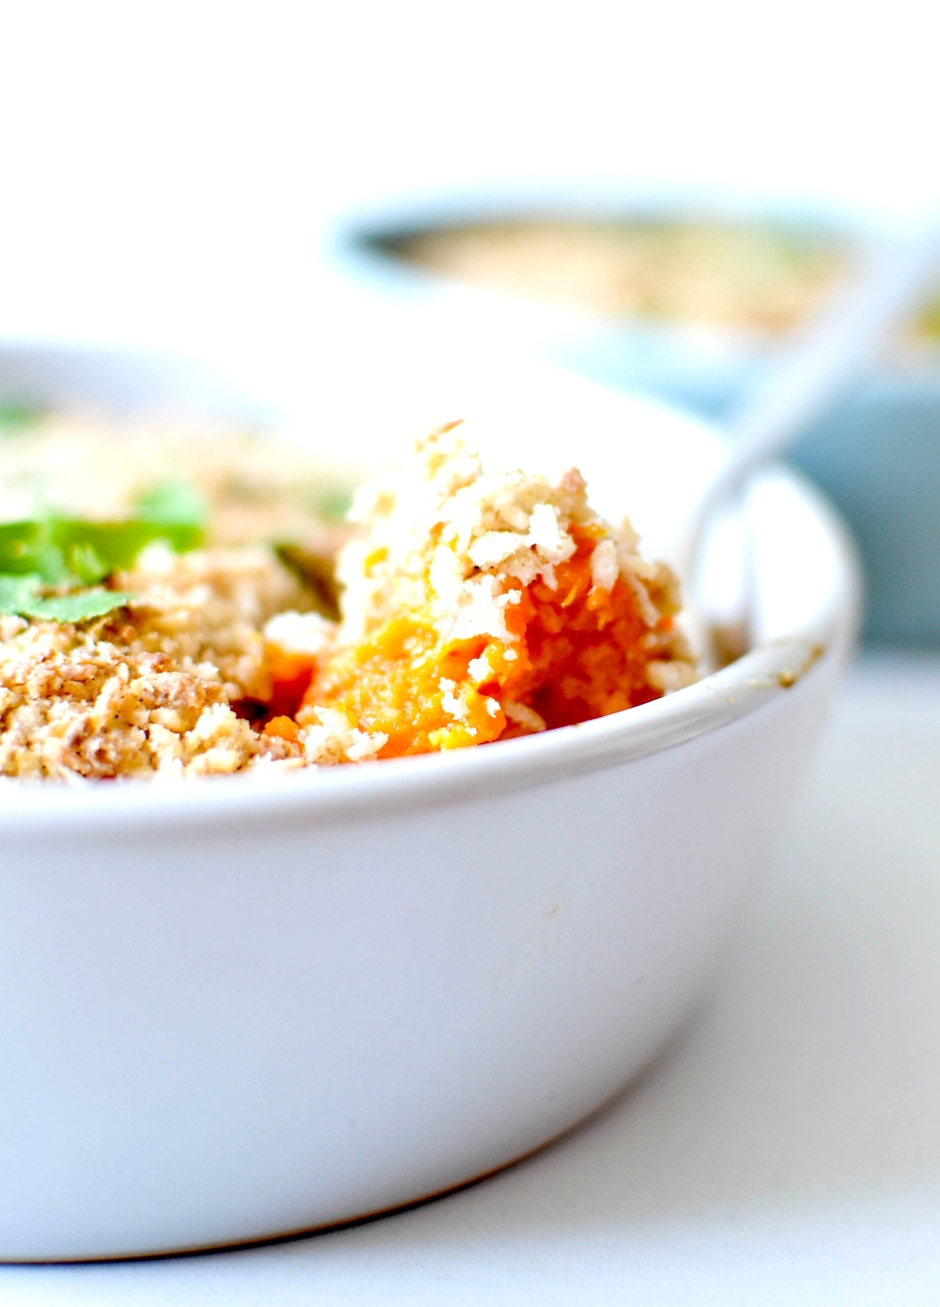 crumble-coco-patate-douce-6